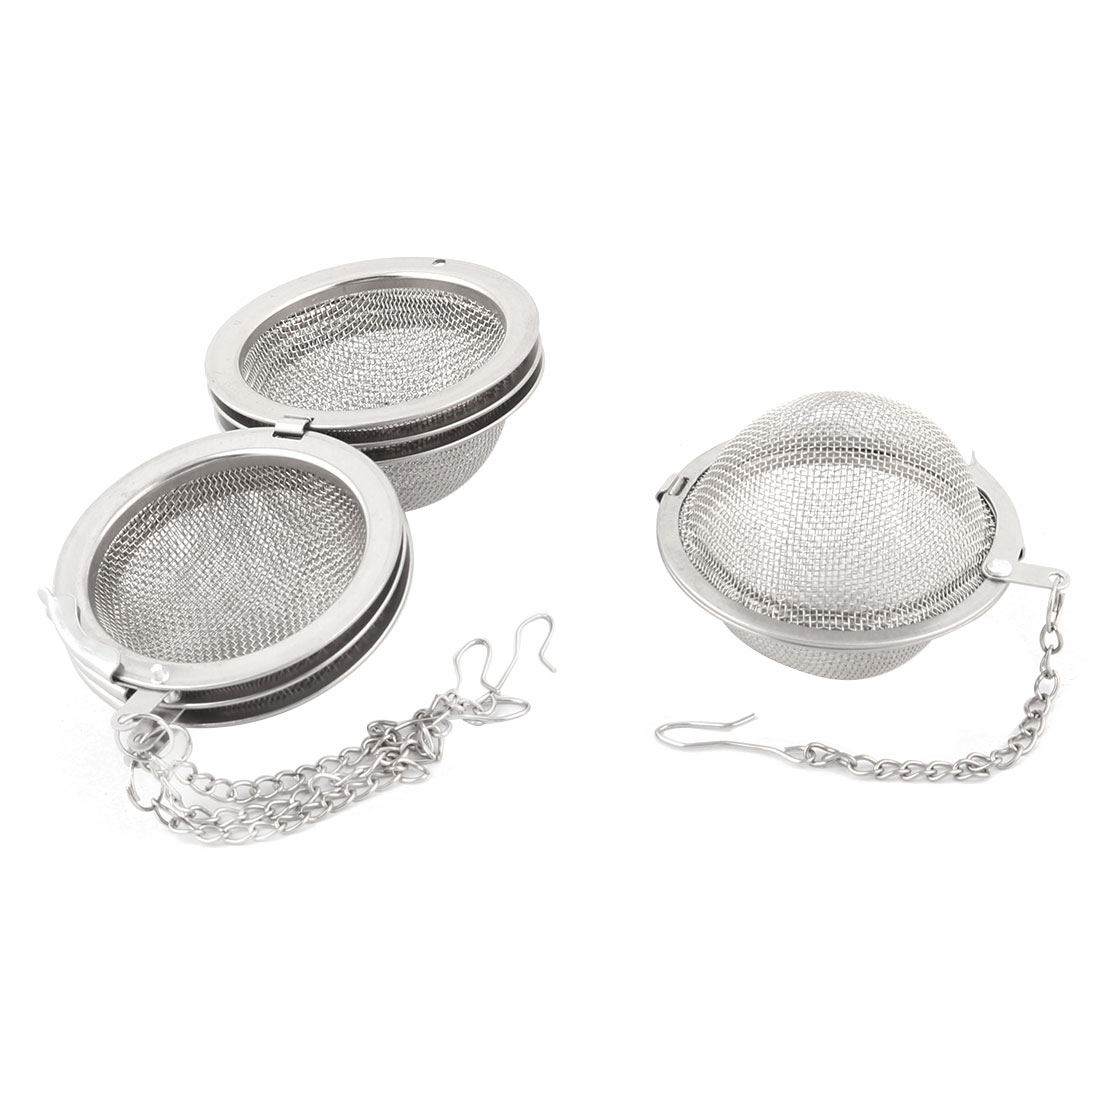 Stainless Steel Leaves Meshy Tea Ball Filter Strainer Infuser Silver Tone 4pcs